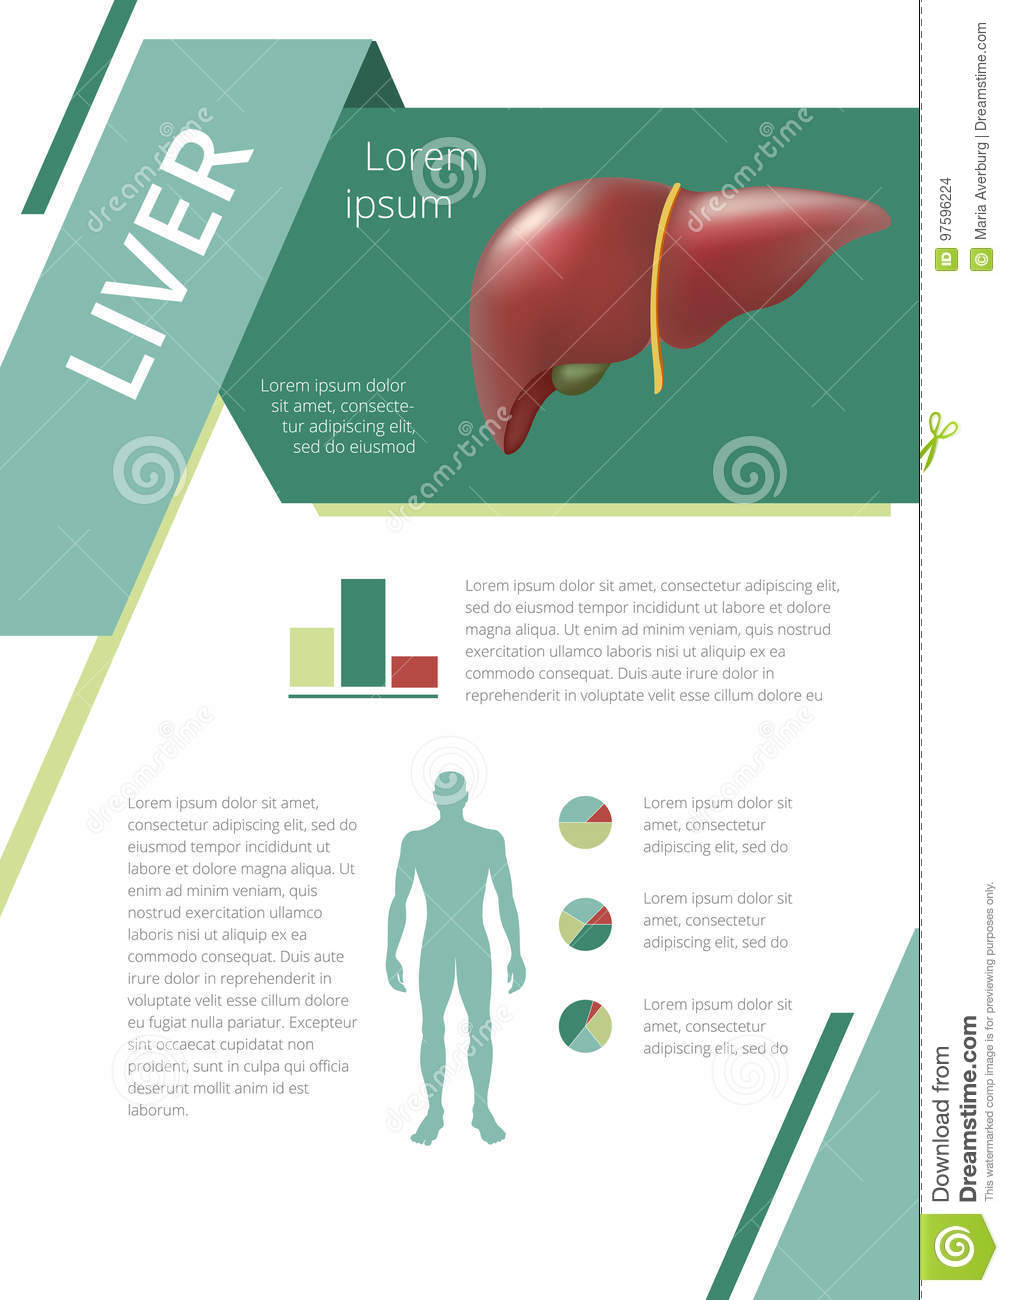 Internal Human Organs Infographic Liver Stock Vector - Illustration ...